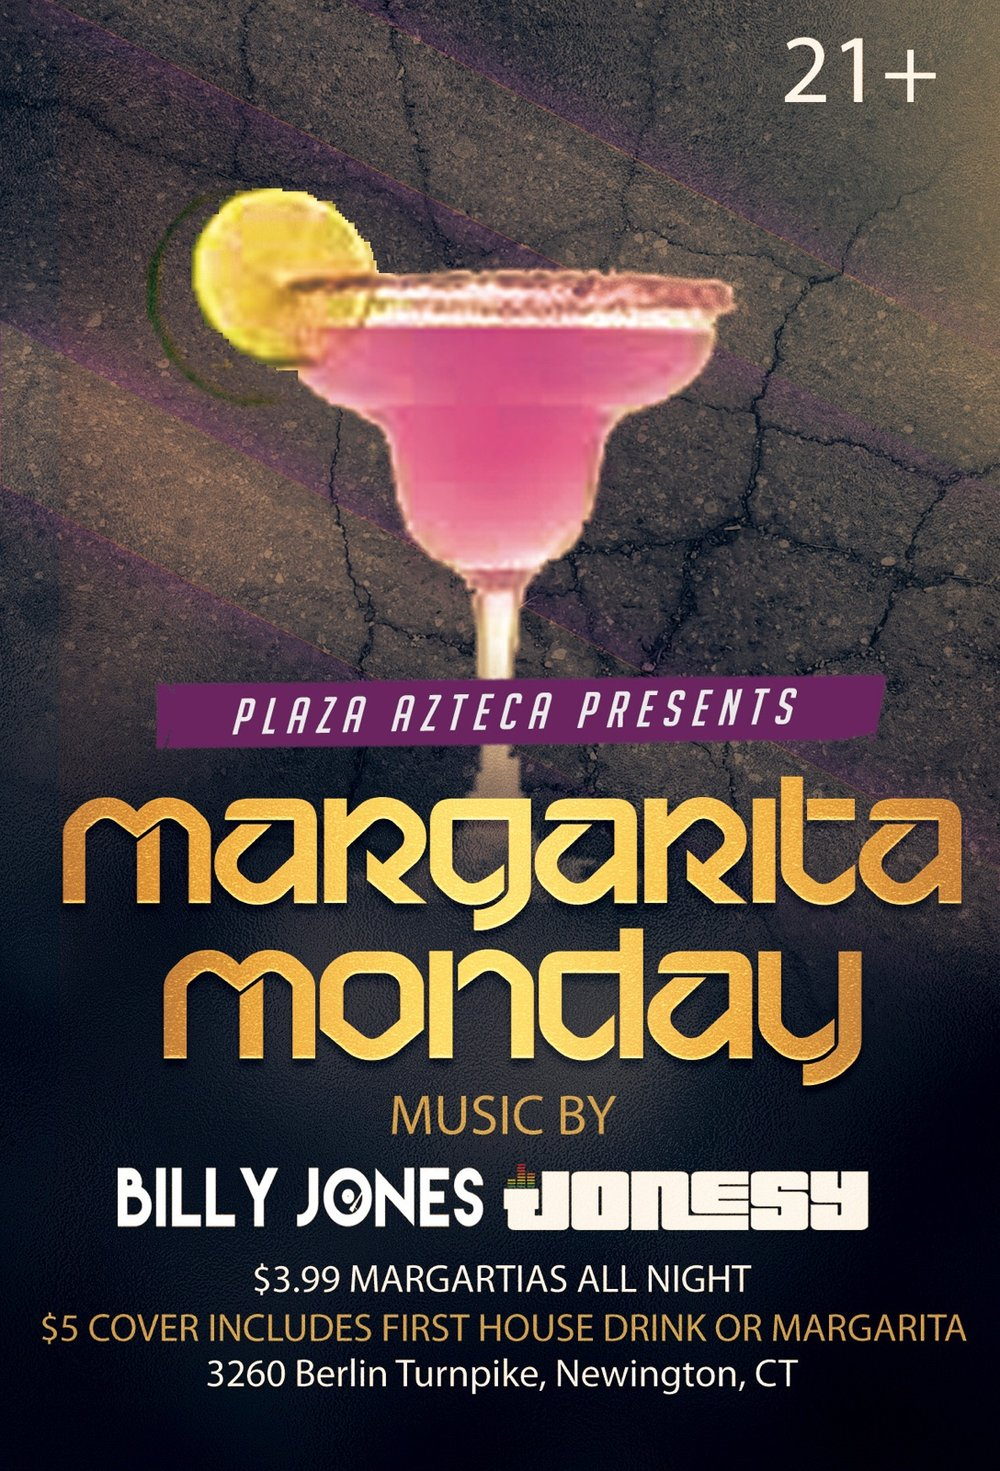 Monday, January 16th   join me at Plaza Azteca in Newington, CT for Margarita Monday with music by Billy Jones & yours truly 9pm-close.  $3.99 Margaritas all night long!  Meet me there! $5 Cover.